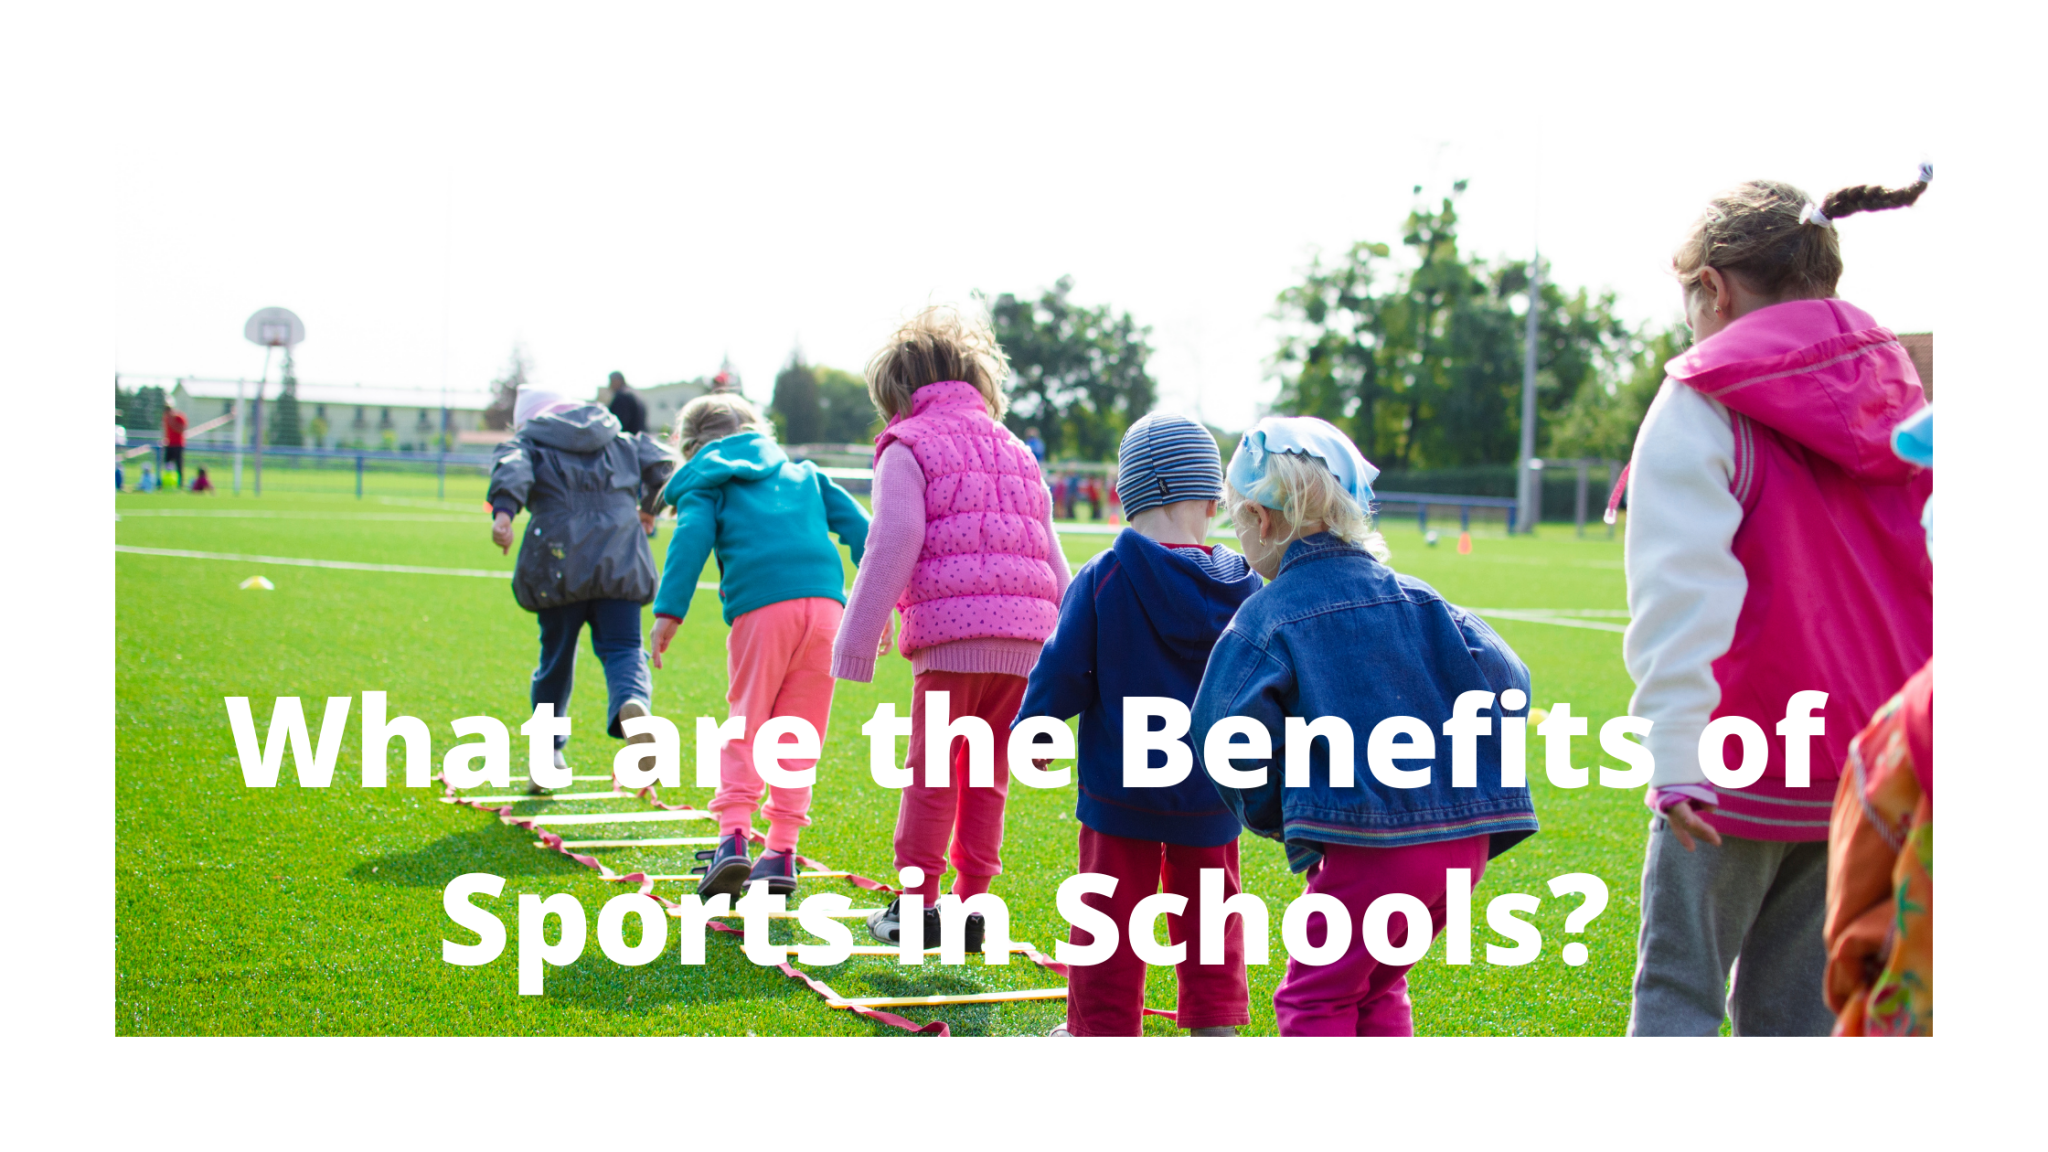 What are the Benefits of Sports in Schools?